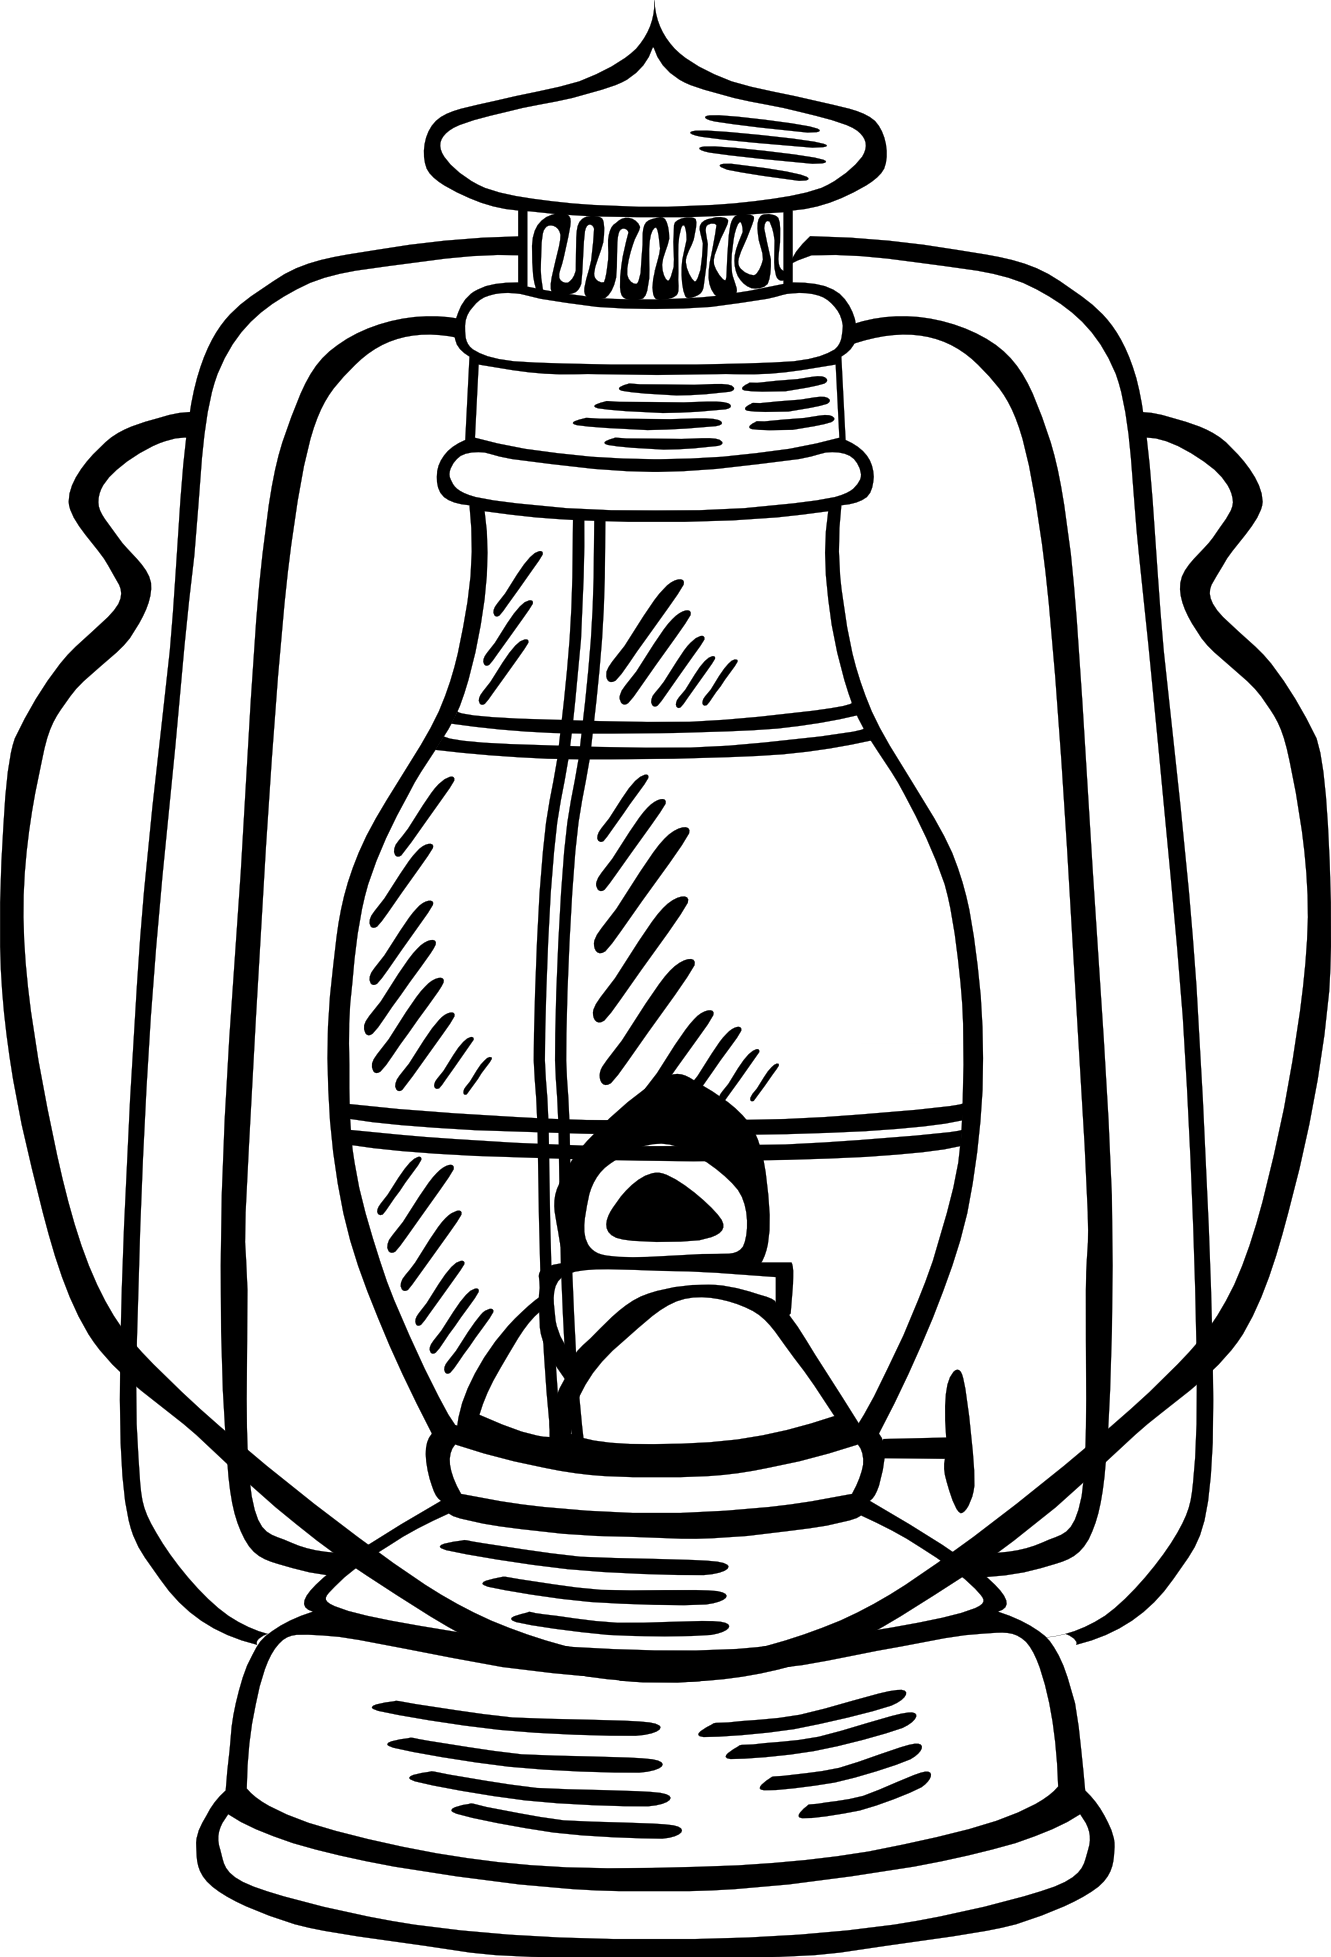 Oil clipart black and white Lamp Clipart Oil oil%20lamp%20clipart%20black%20and%20white Free